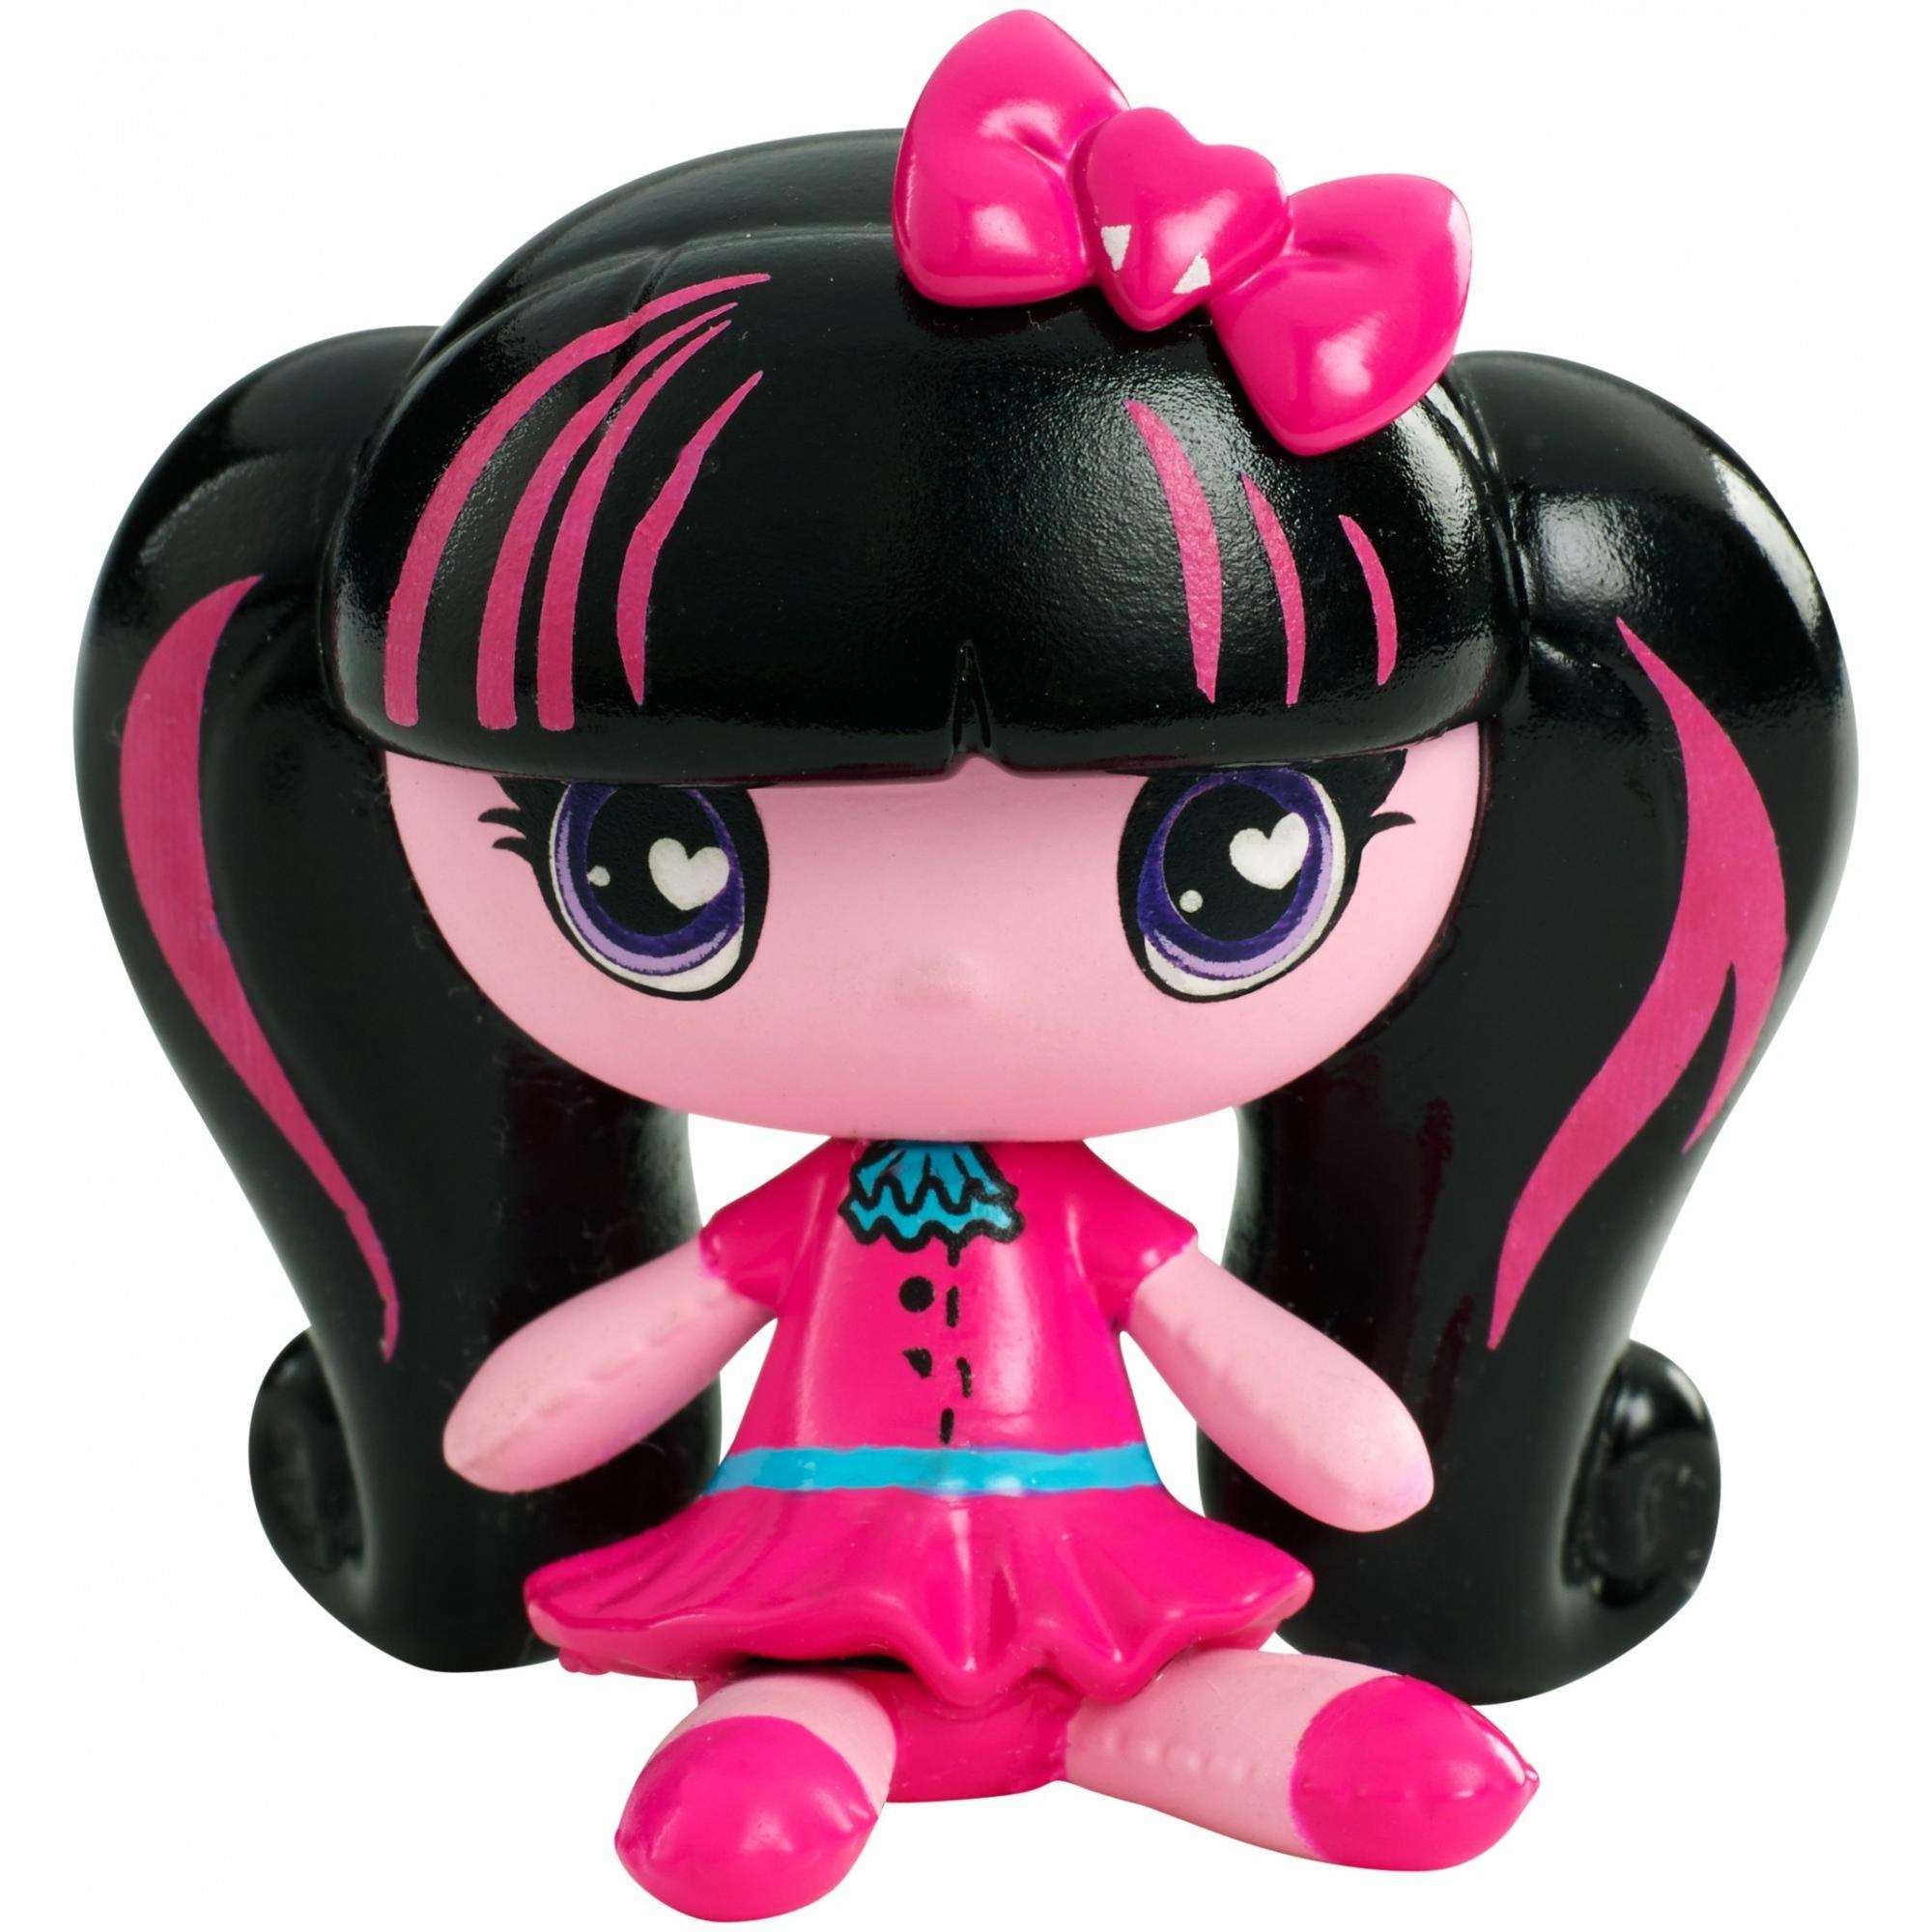 Monster High Minis (Styles May Vary) by Monster High